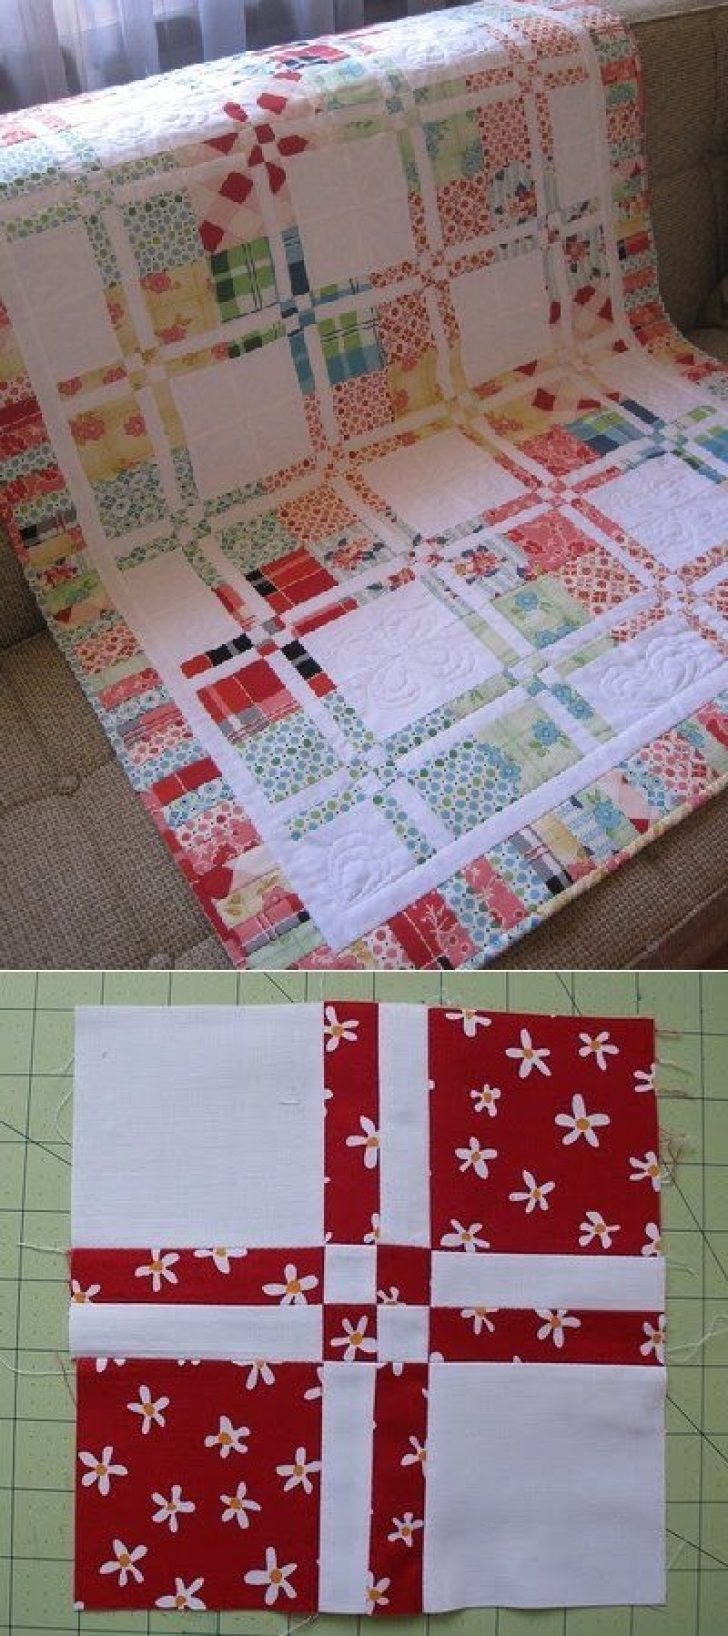 Permalink to Interesting Disappearing 4 Patch Quilt Pattern